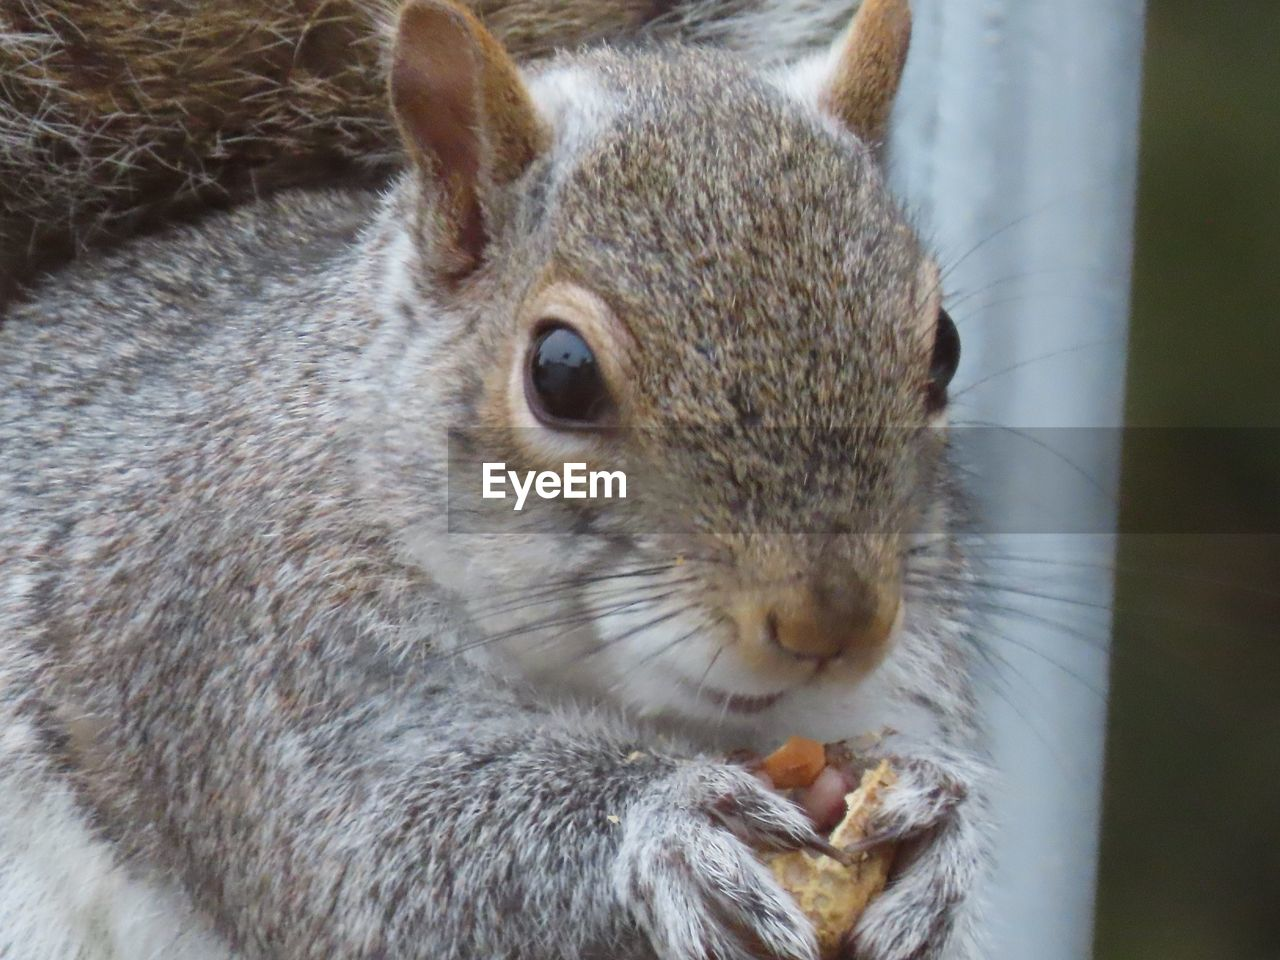 animal themes, one animal, animal, mammal, animal wildlife, rodent, close-up, animals in the wild, vertebrate, no people, day, focus on foreground, pets, domestic, eating, animal body part, rabbit, squirrel, outdoors, portrait, whisker, animal head, animal eye